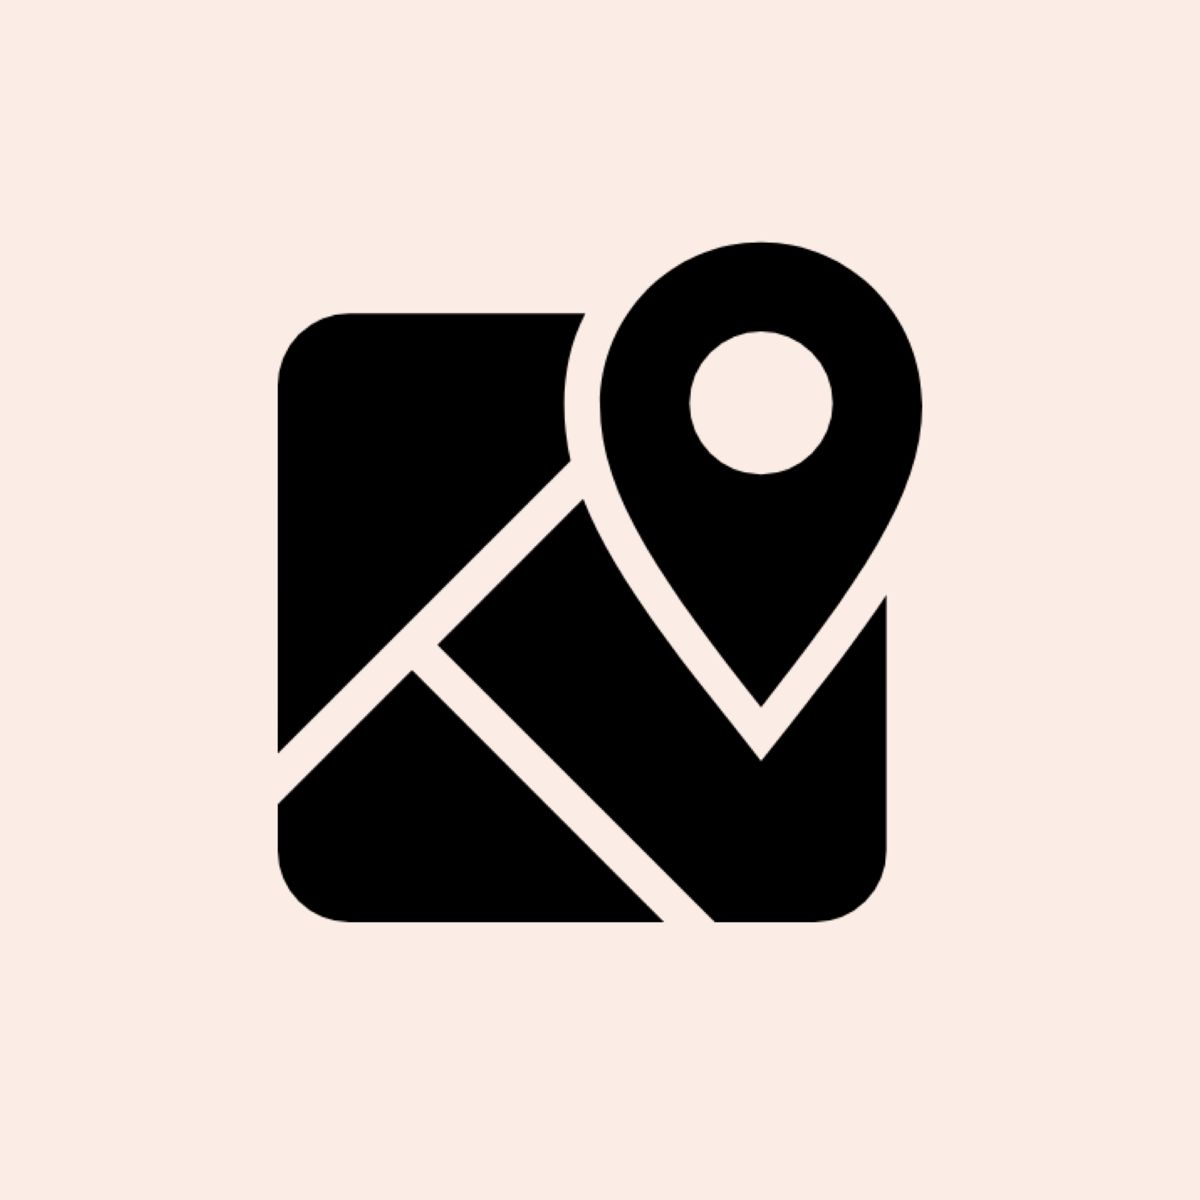 Maps Icon Aesthetic Find over 100+ of the best free aesthetic images. best wallpaper for mobile 202k